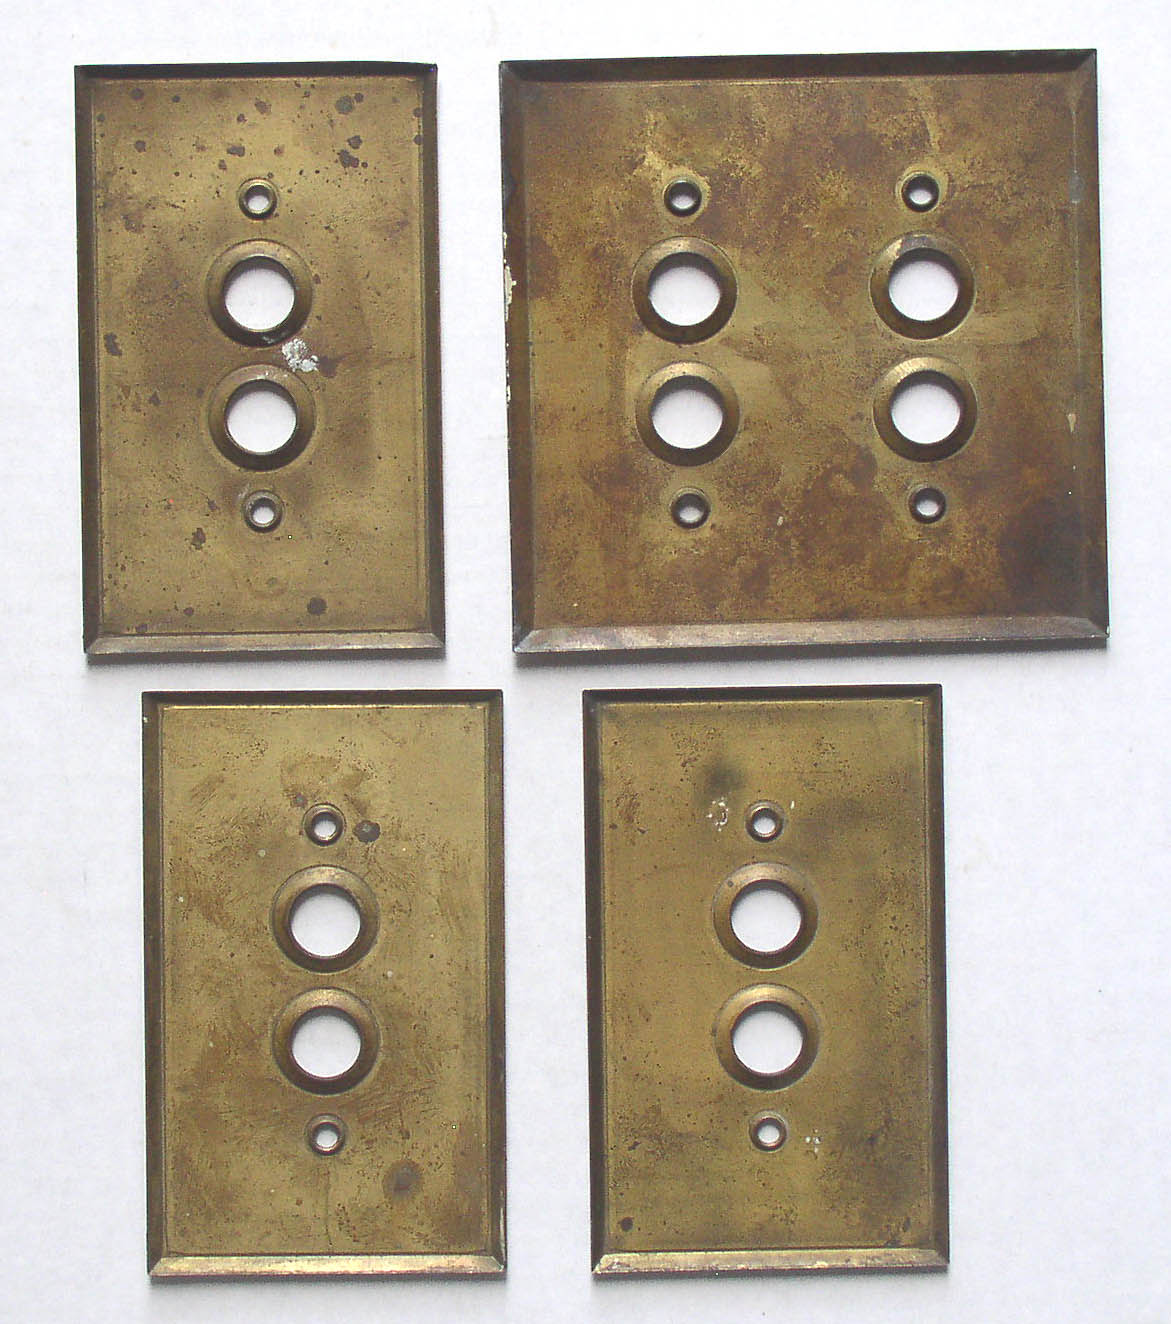 Brass Light Switch Covers Endearing 4 Antique Brass Push Button Switch Plates Covers  Thingery Design Ideas